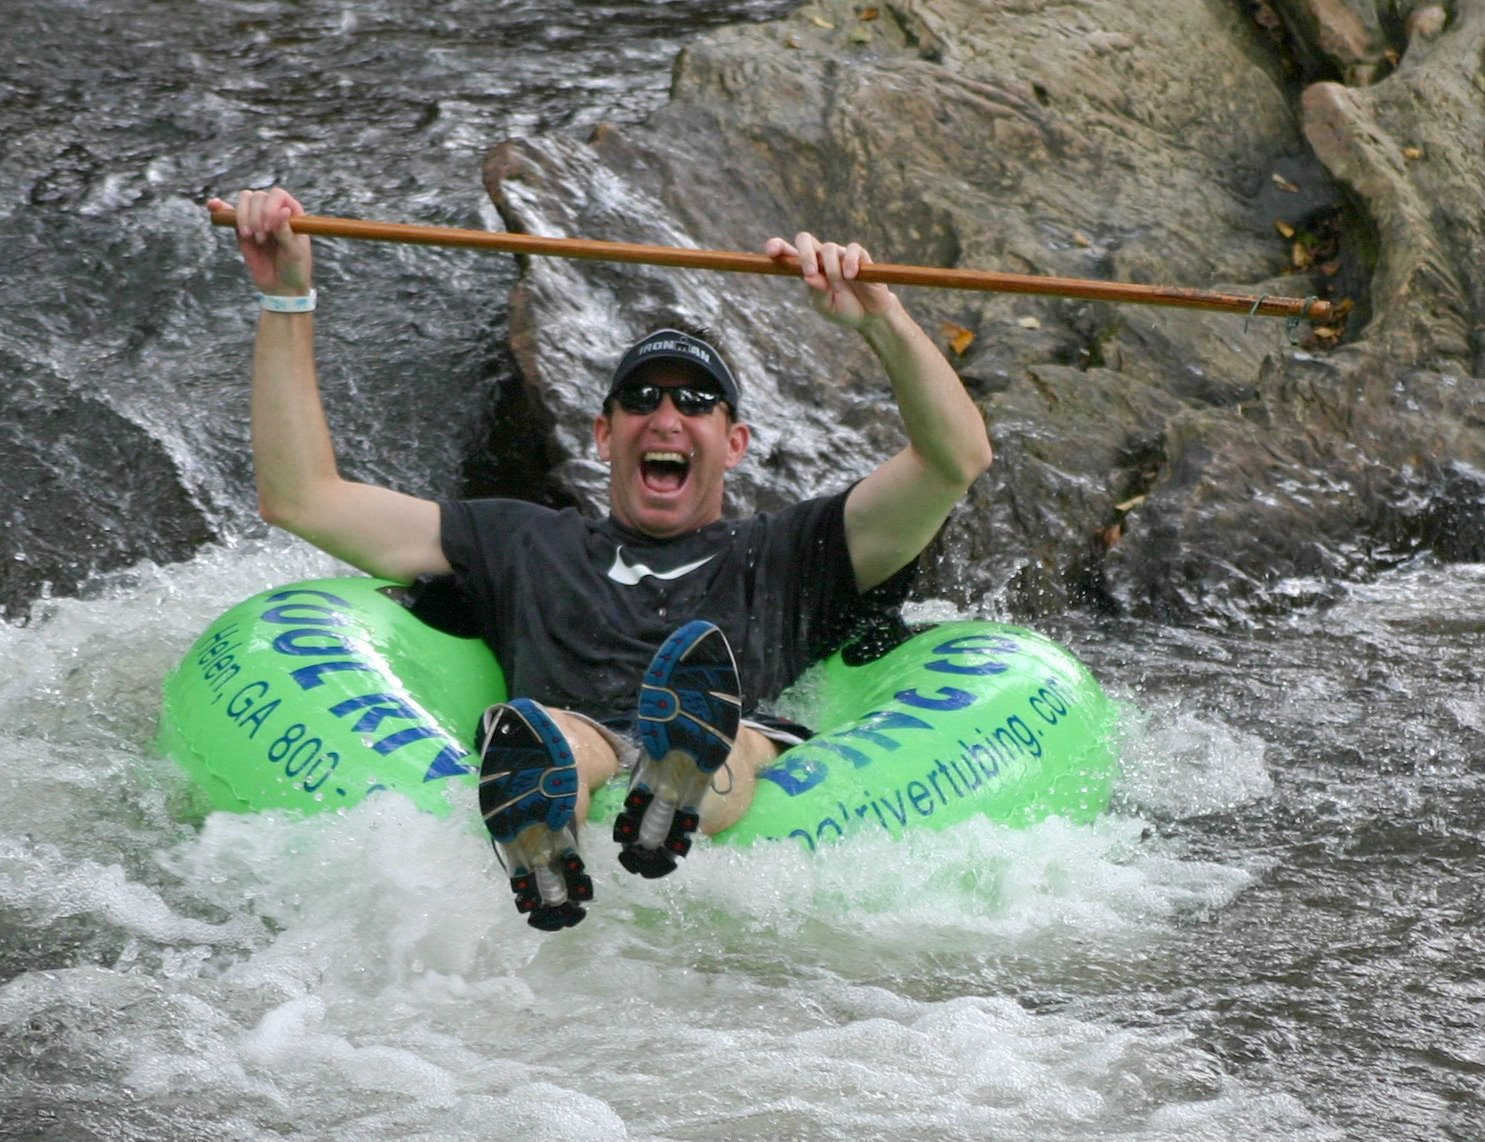 Helen GA Chattahoochee RiverTubing